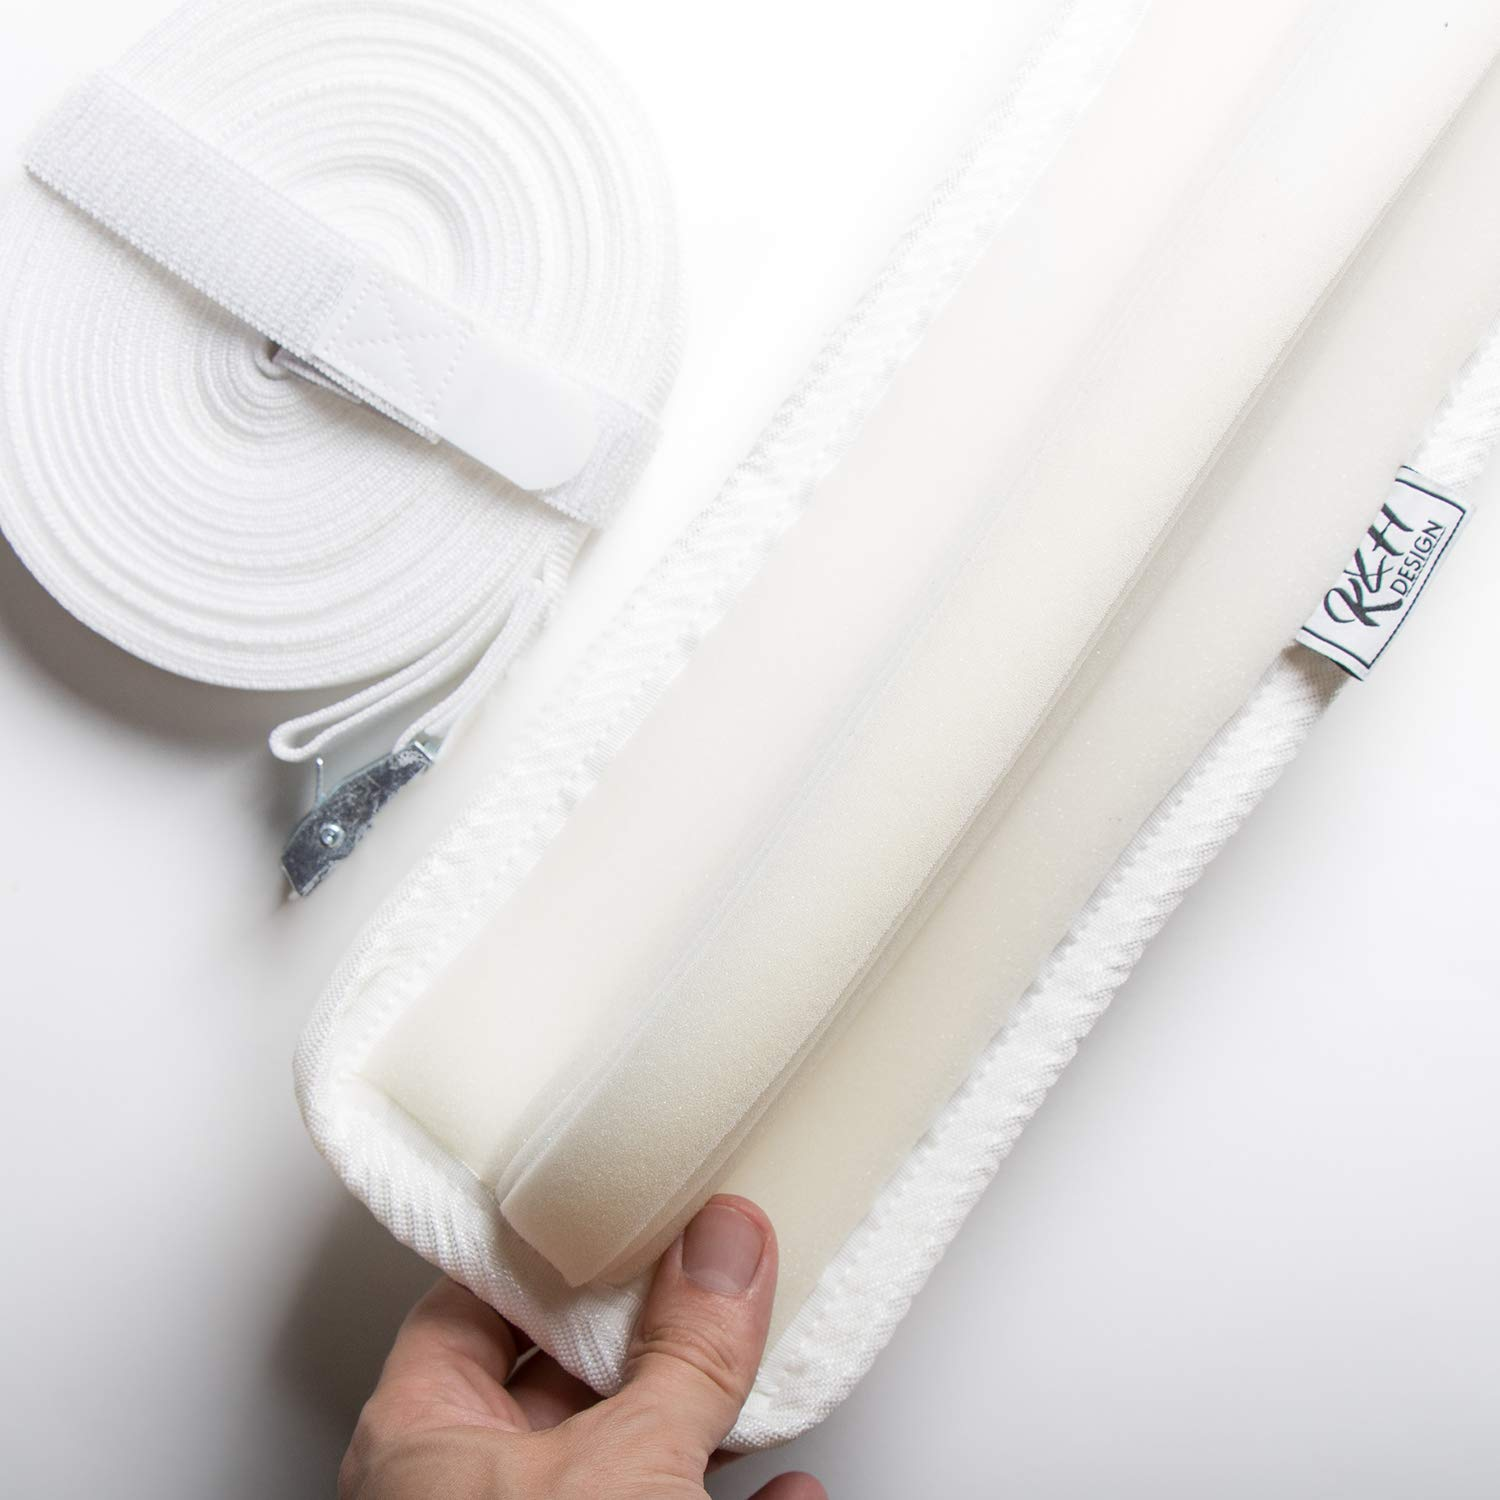 Twin to King Converter Kit with Bed Bridge Gap Filler and Bed Strap Connector Belt - Make Twin or Twin XL Beds Into King - Super Soft Hypoallergenic Foam with Premium Feel Cover